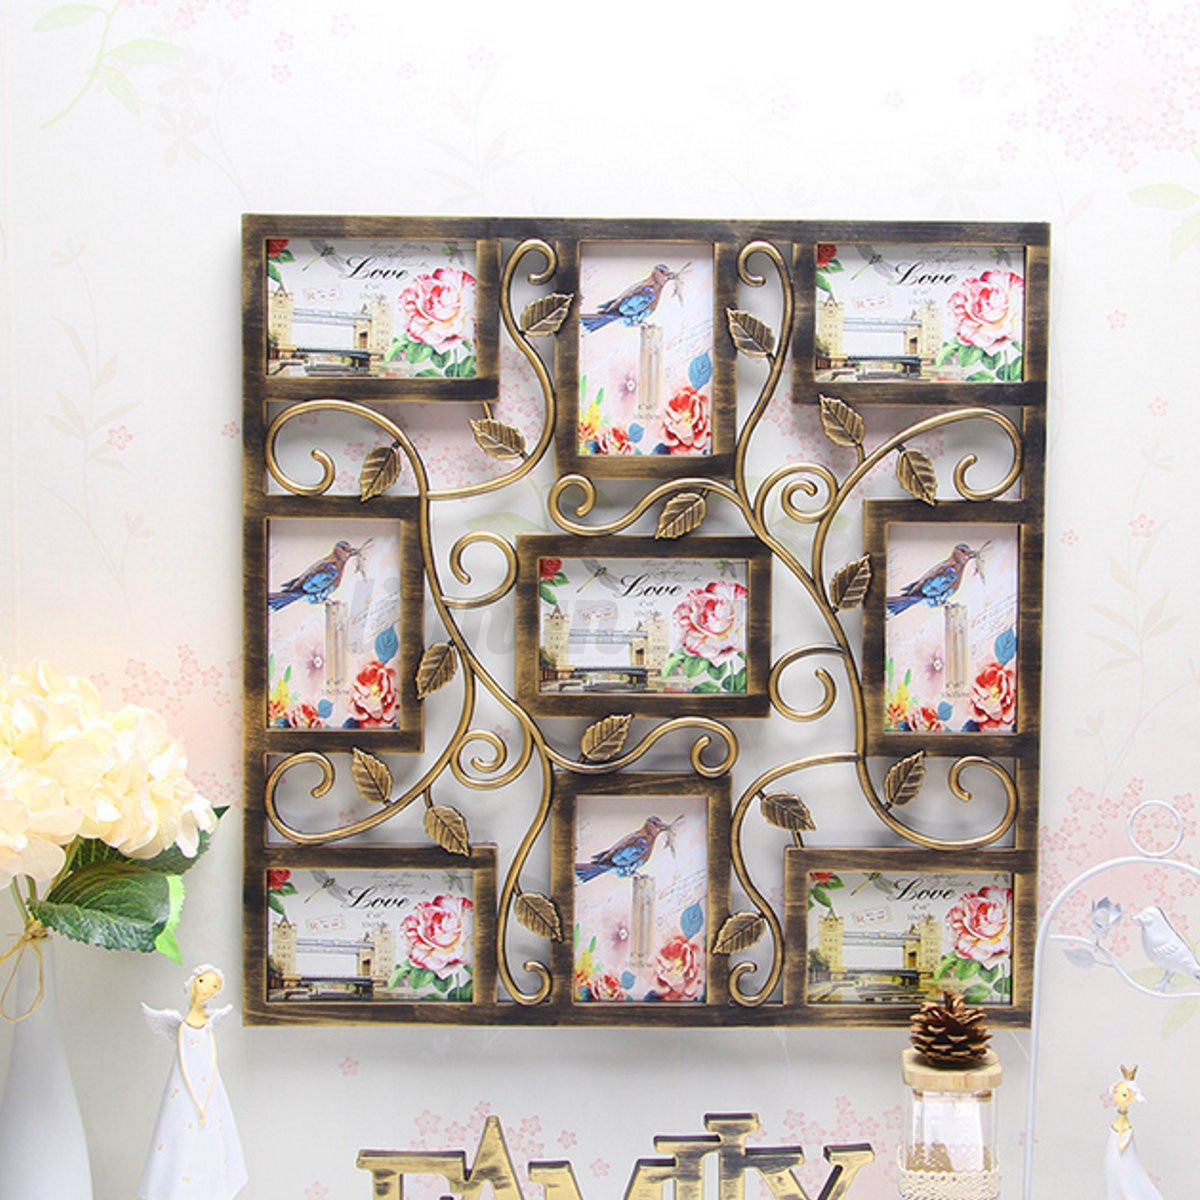 8 Types 6'' Collage Multi Photo Frames Picture Display